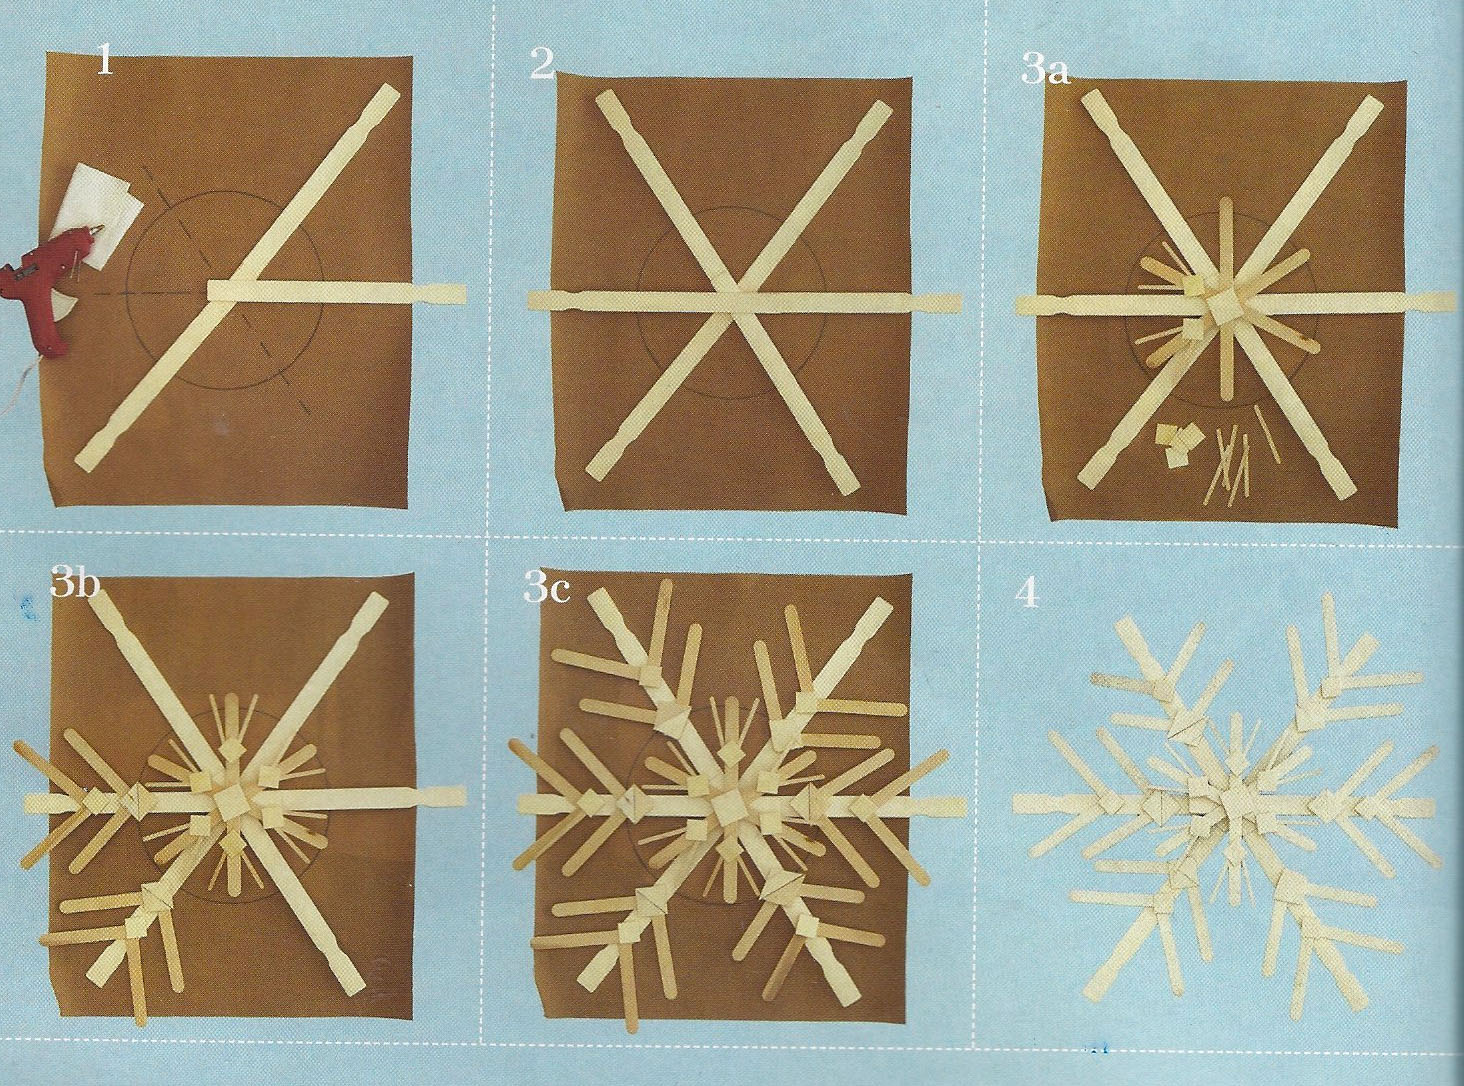 Karin lidbeck december 2011 for How to make paper christmas decorations at home